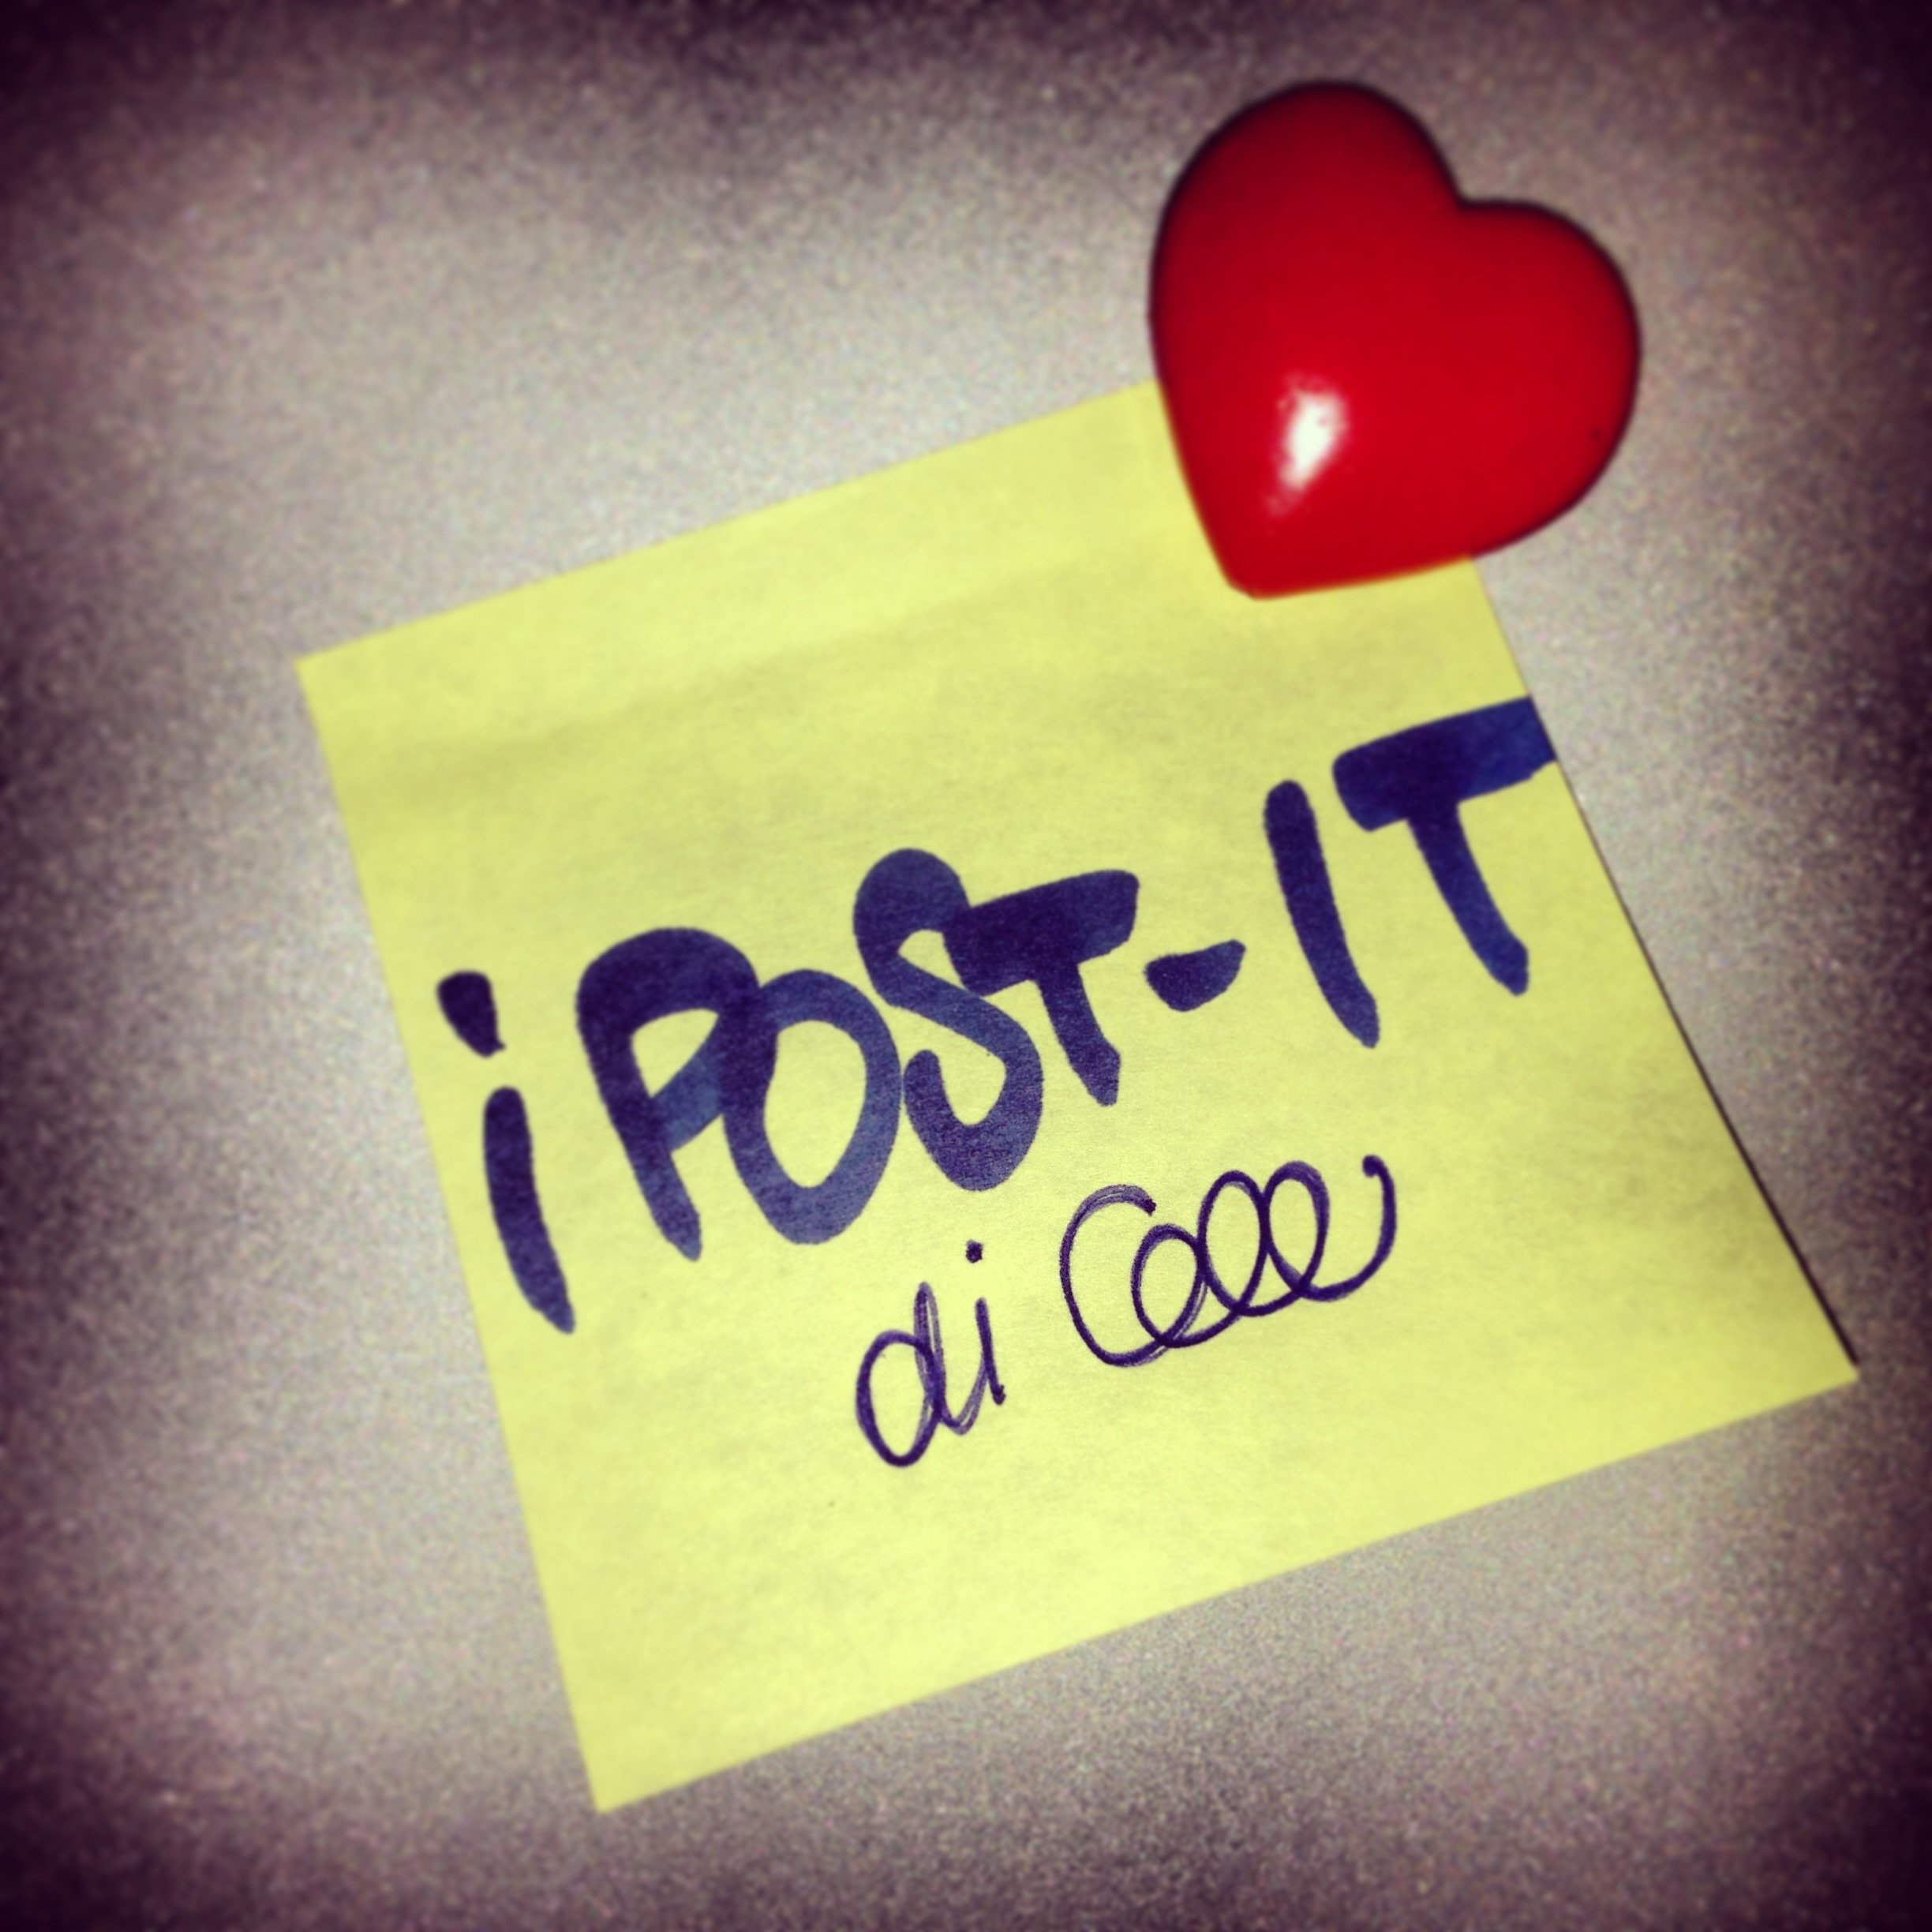 Io lo dico con i POST-IT